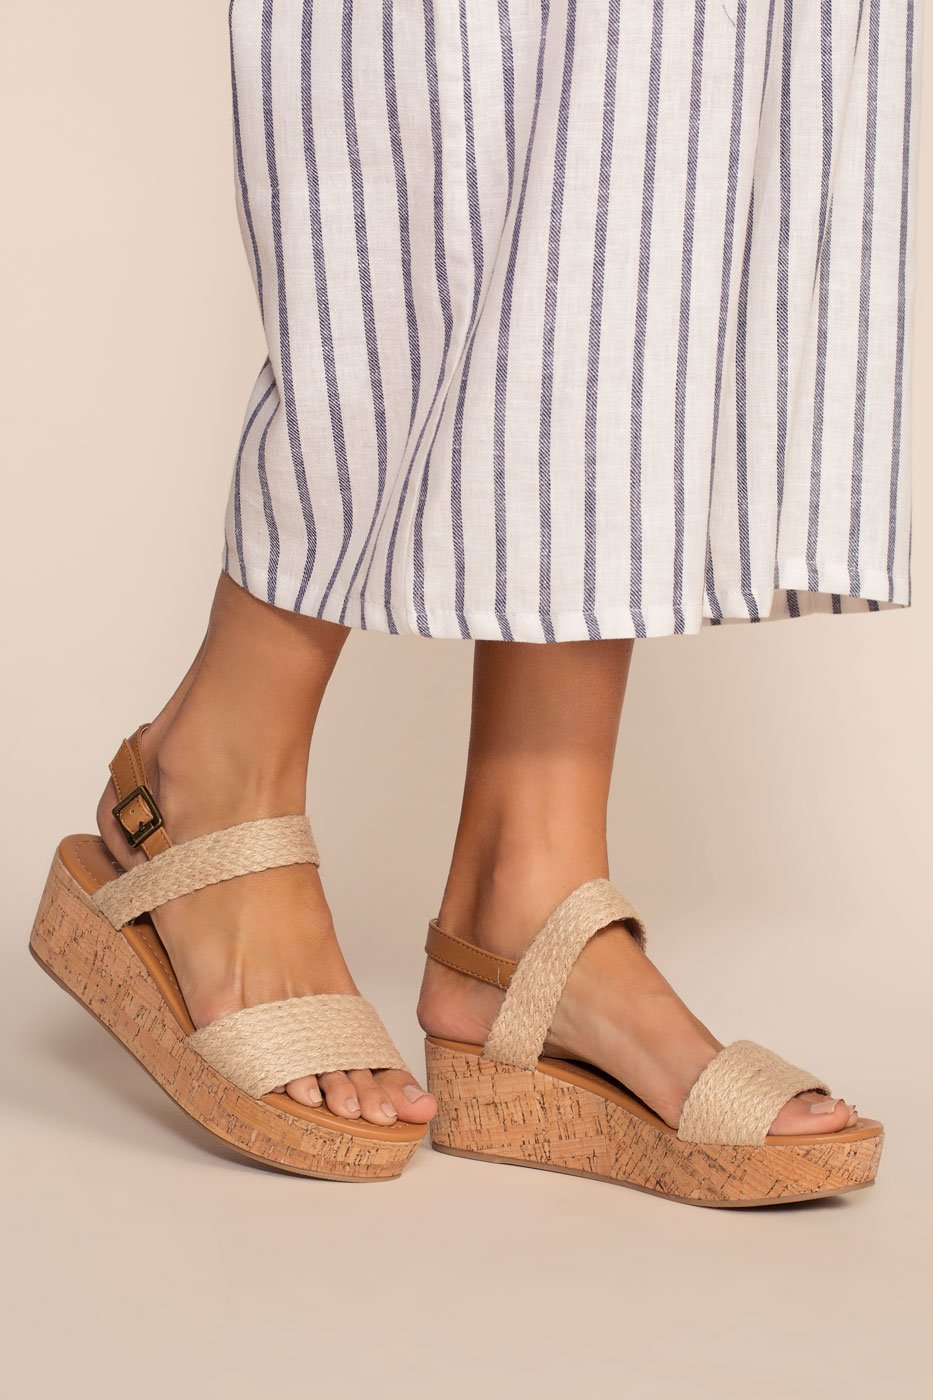 Natural Platform Sandals Beaches Natural Sandals Sandals Platform Platform Beaches Beaches Natural 13lFKJcT